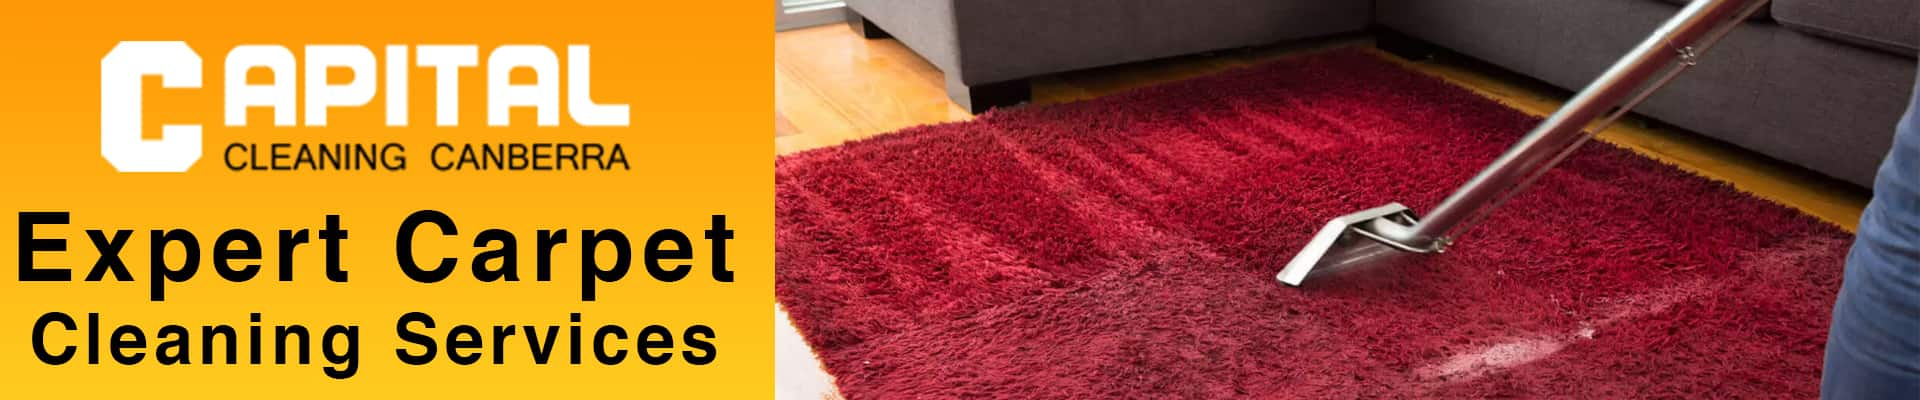 Expert Carpet Cleaning Services Forrest